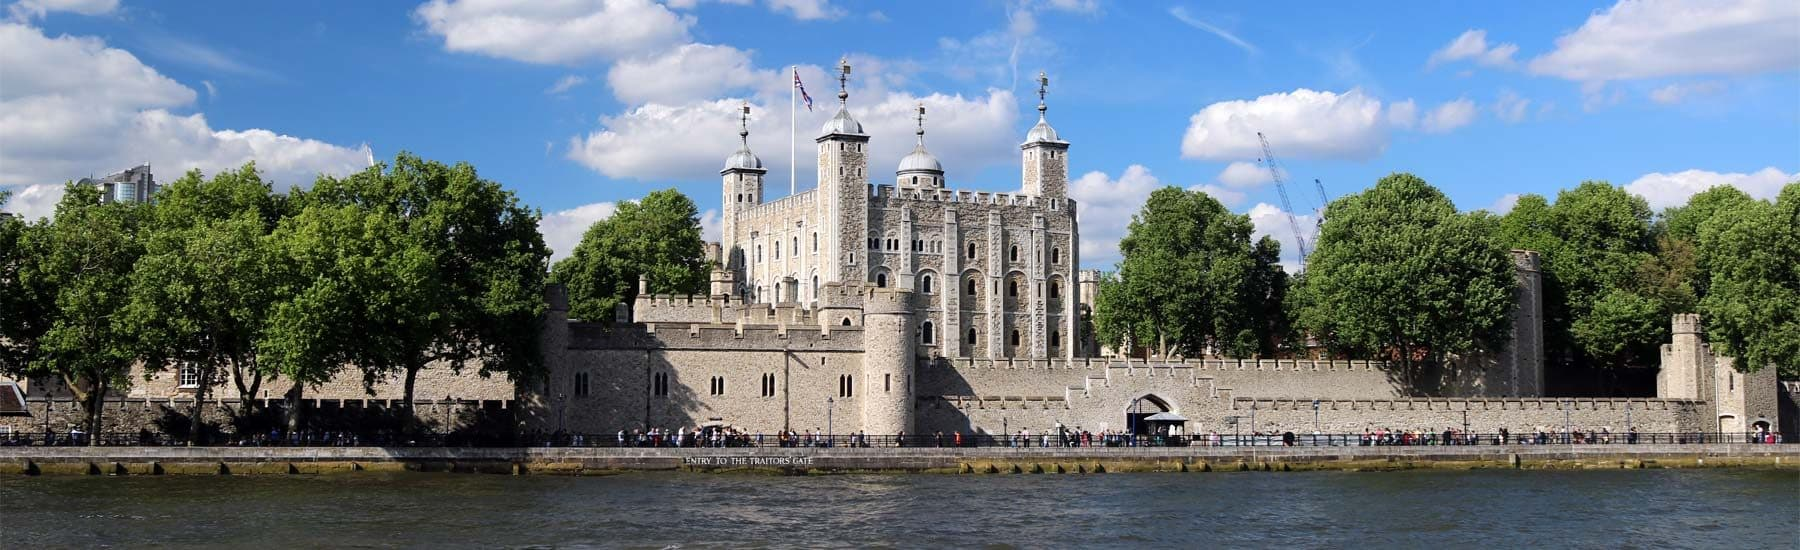 Thames River Sightseeing, Tower of London